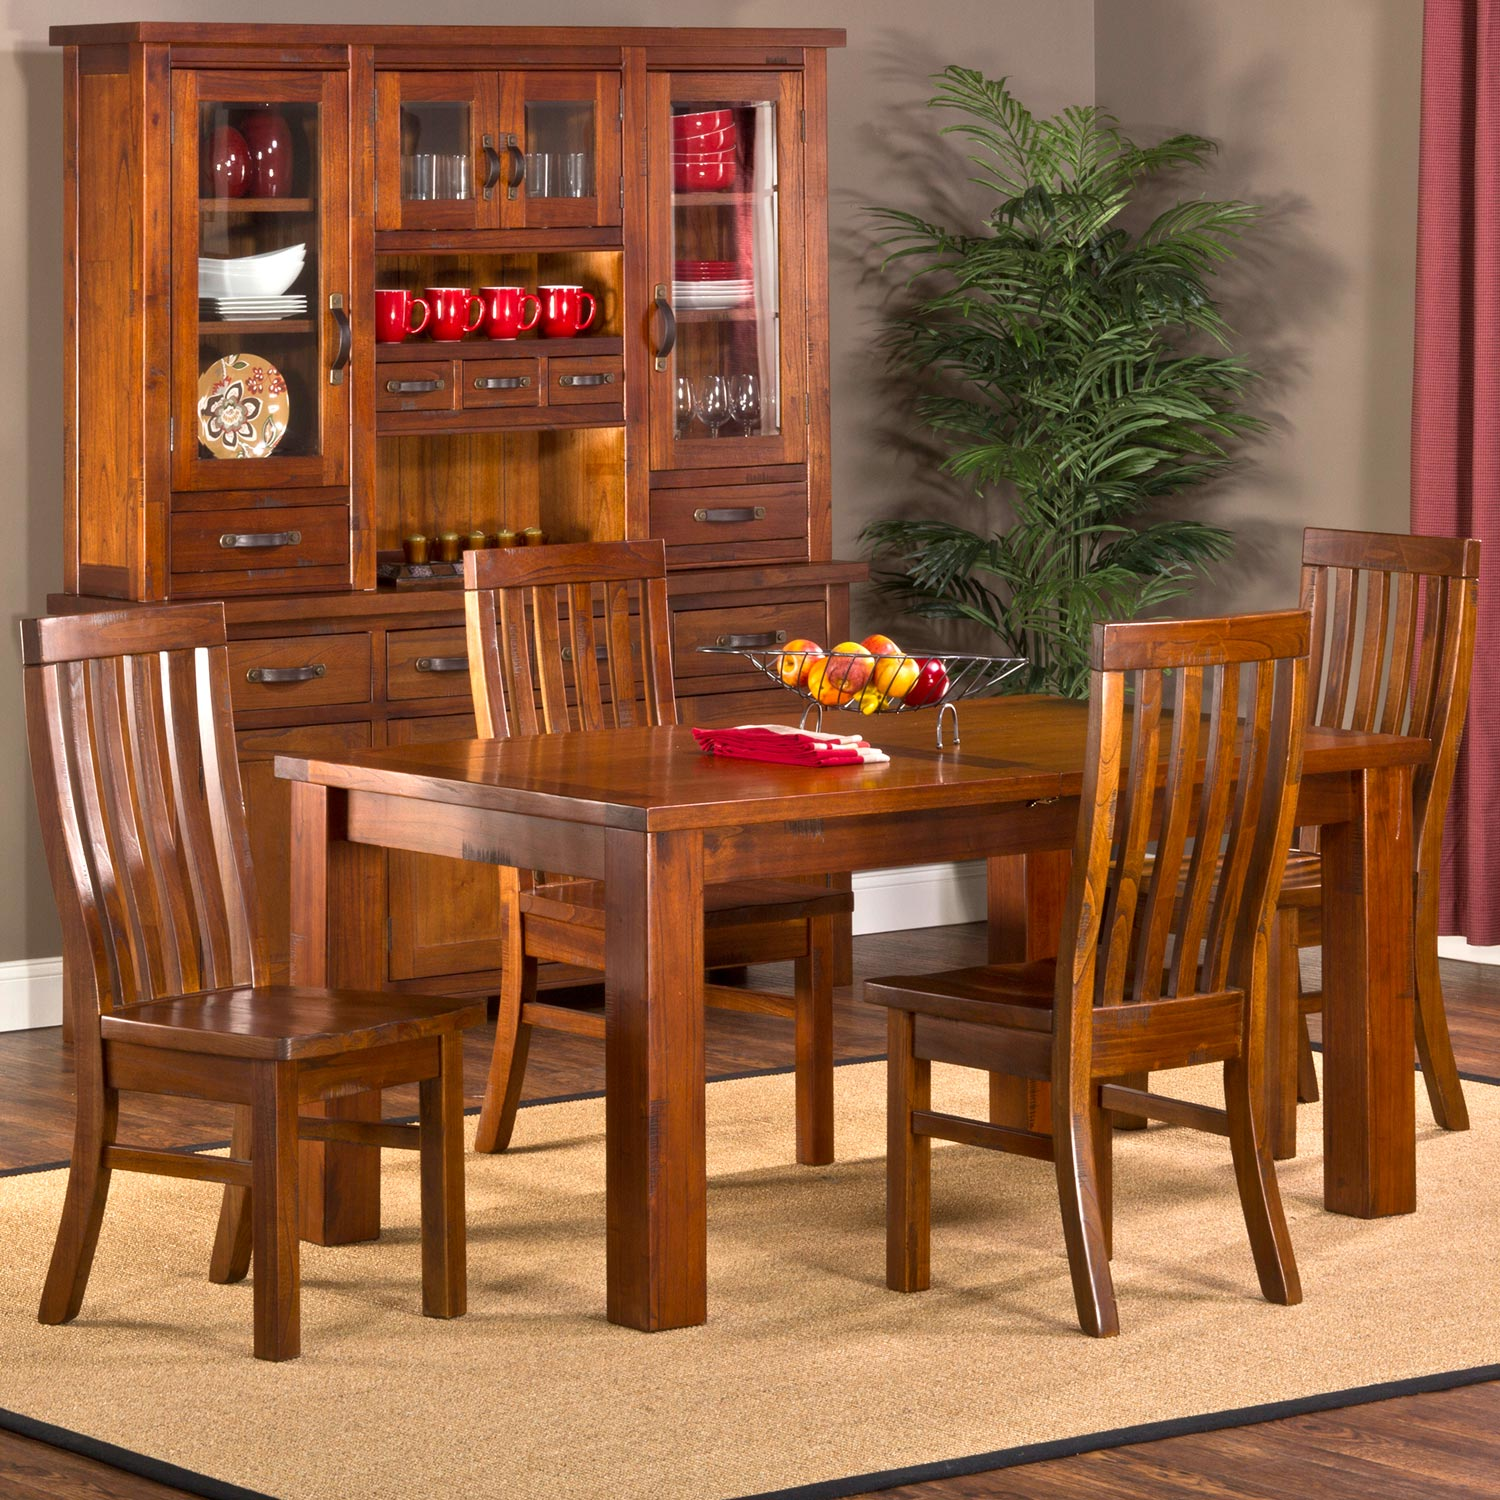 Outback 5 Piece Extension Dining Set - Distressed Chestnut - HILL-4321DTBEC